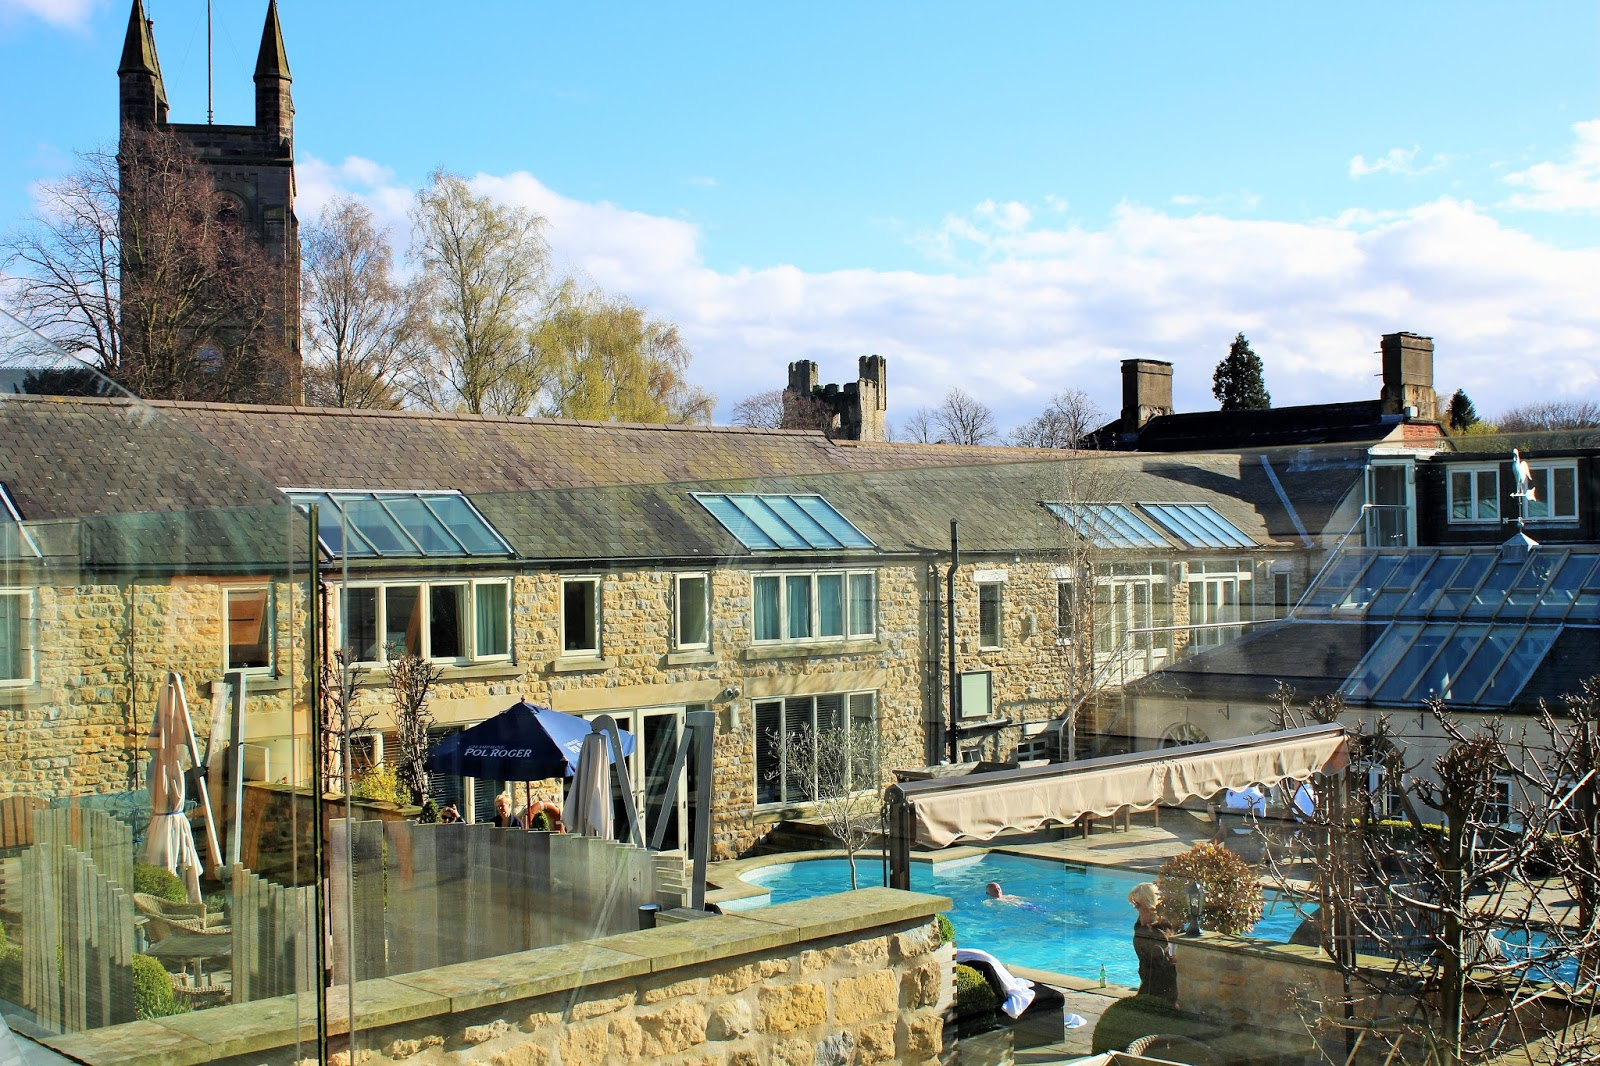 A Trip to North Yorkshire 16 - The Feversham Arms Hotel